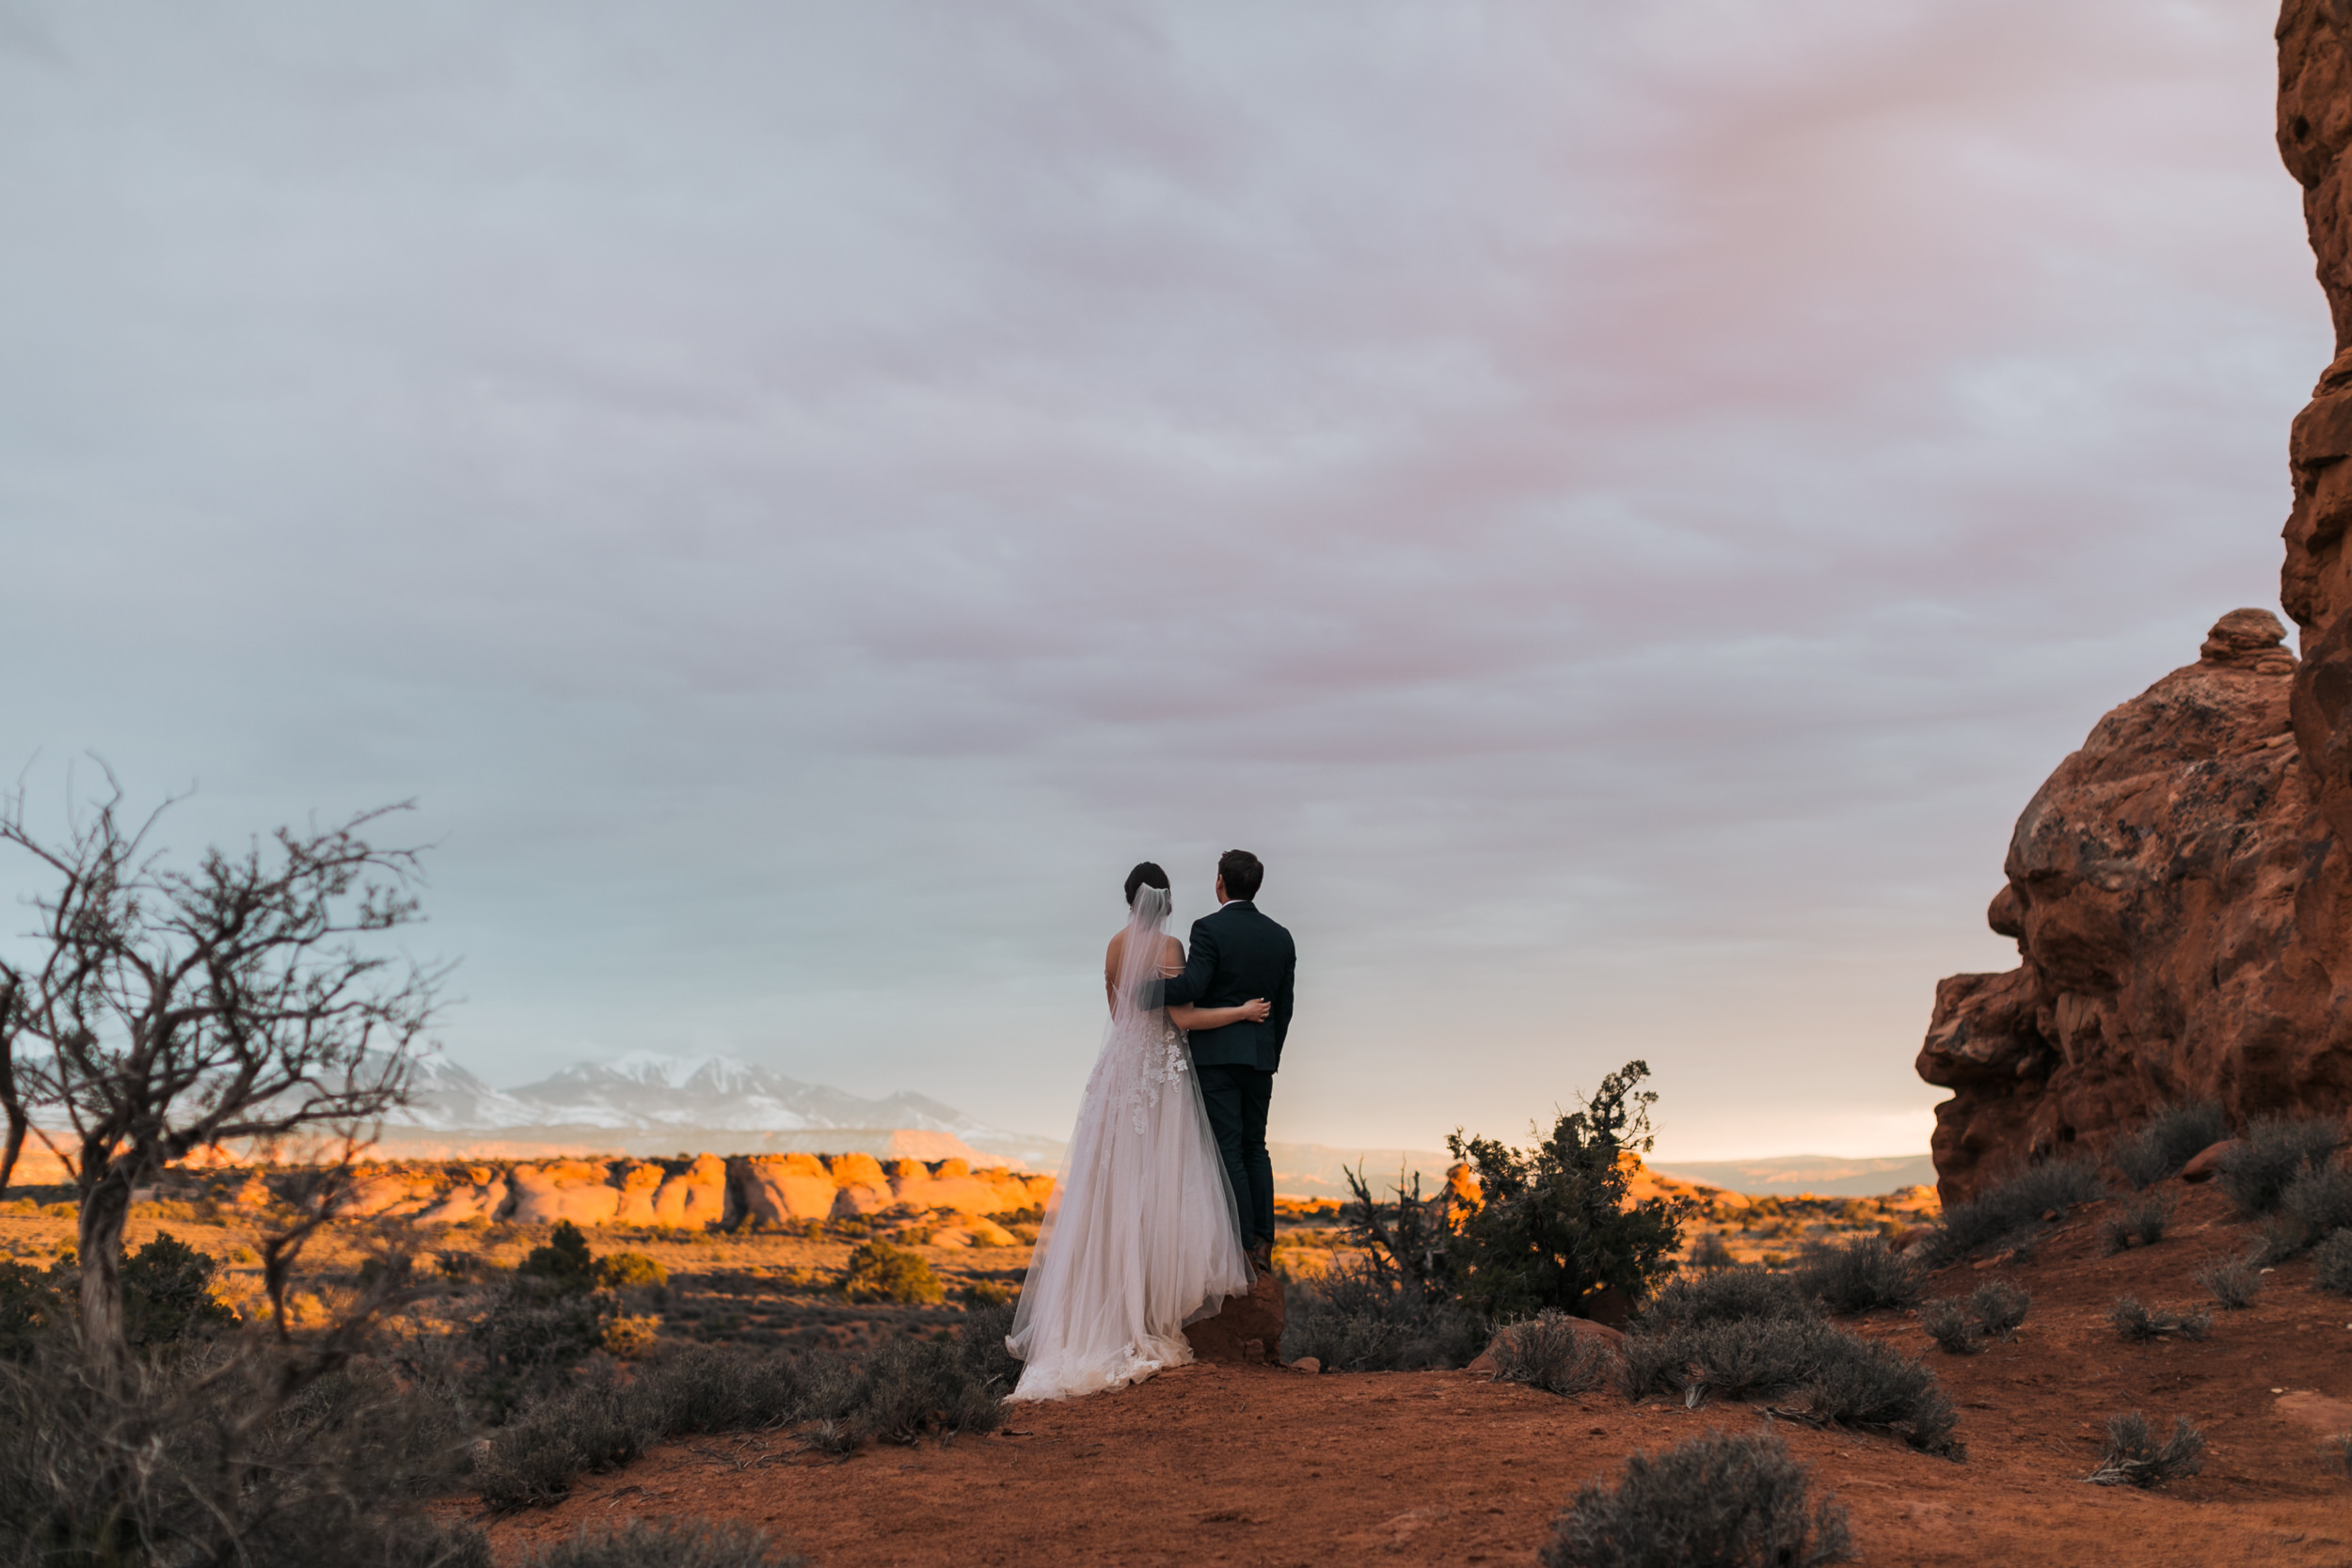 The Lasalle's in the background make sunsets in Arches National Park that much more beautiful.